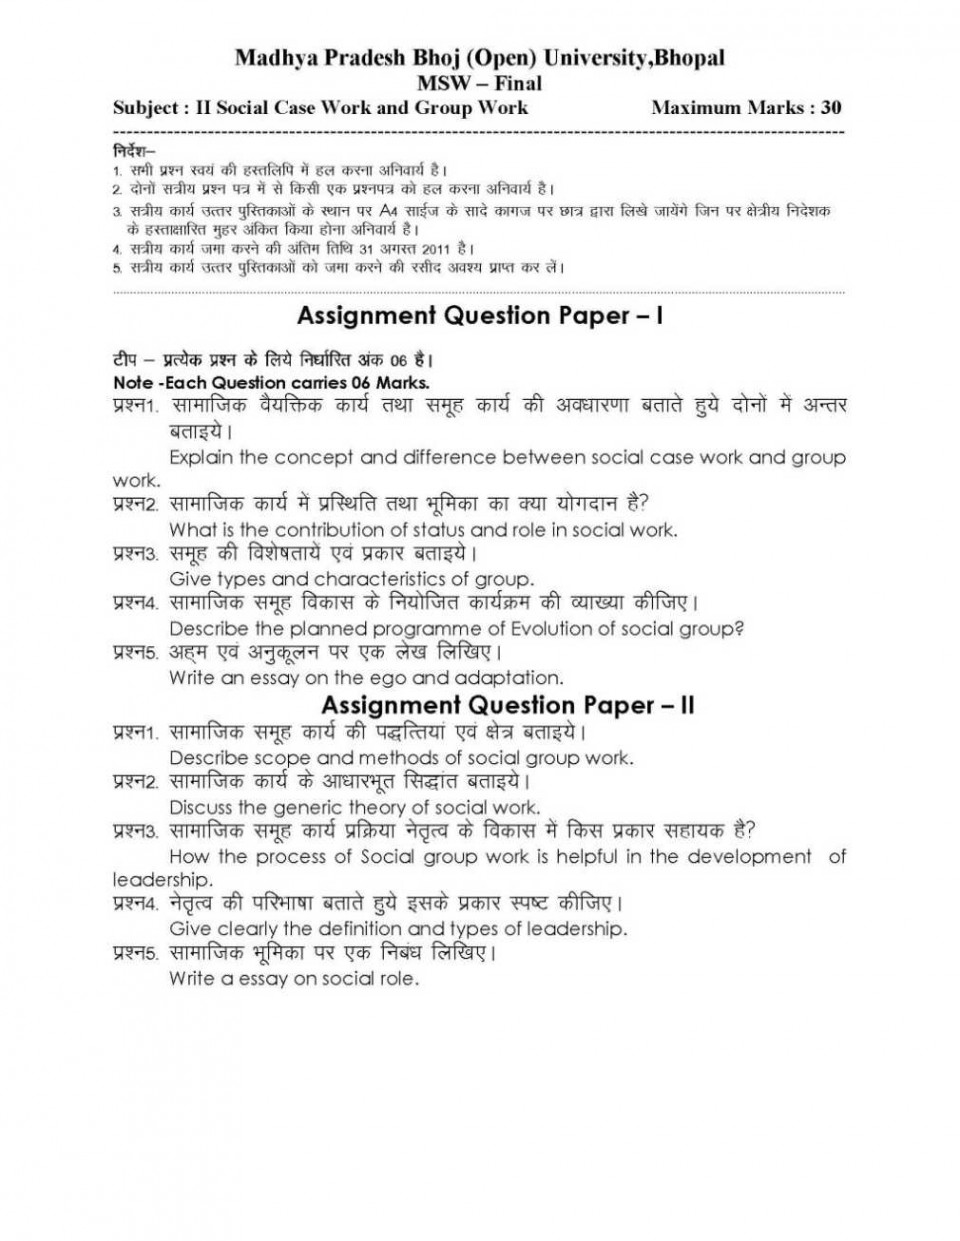 012 Bhoj University Bhopal Msw Definition Essays Surprising Essay Examples Friendship Define Writing Pdf 960